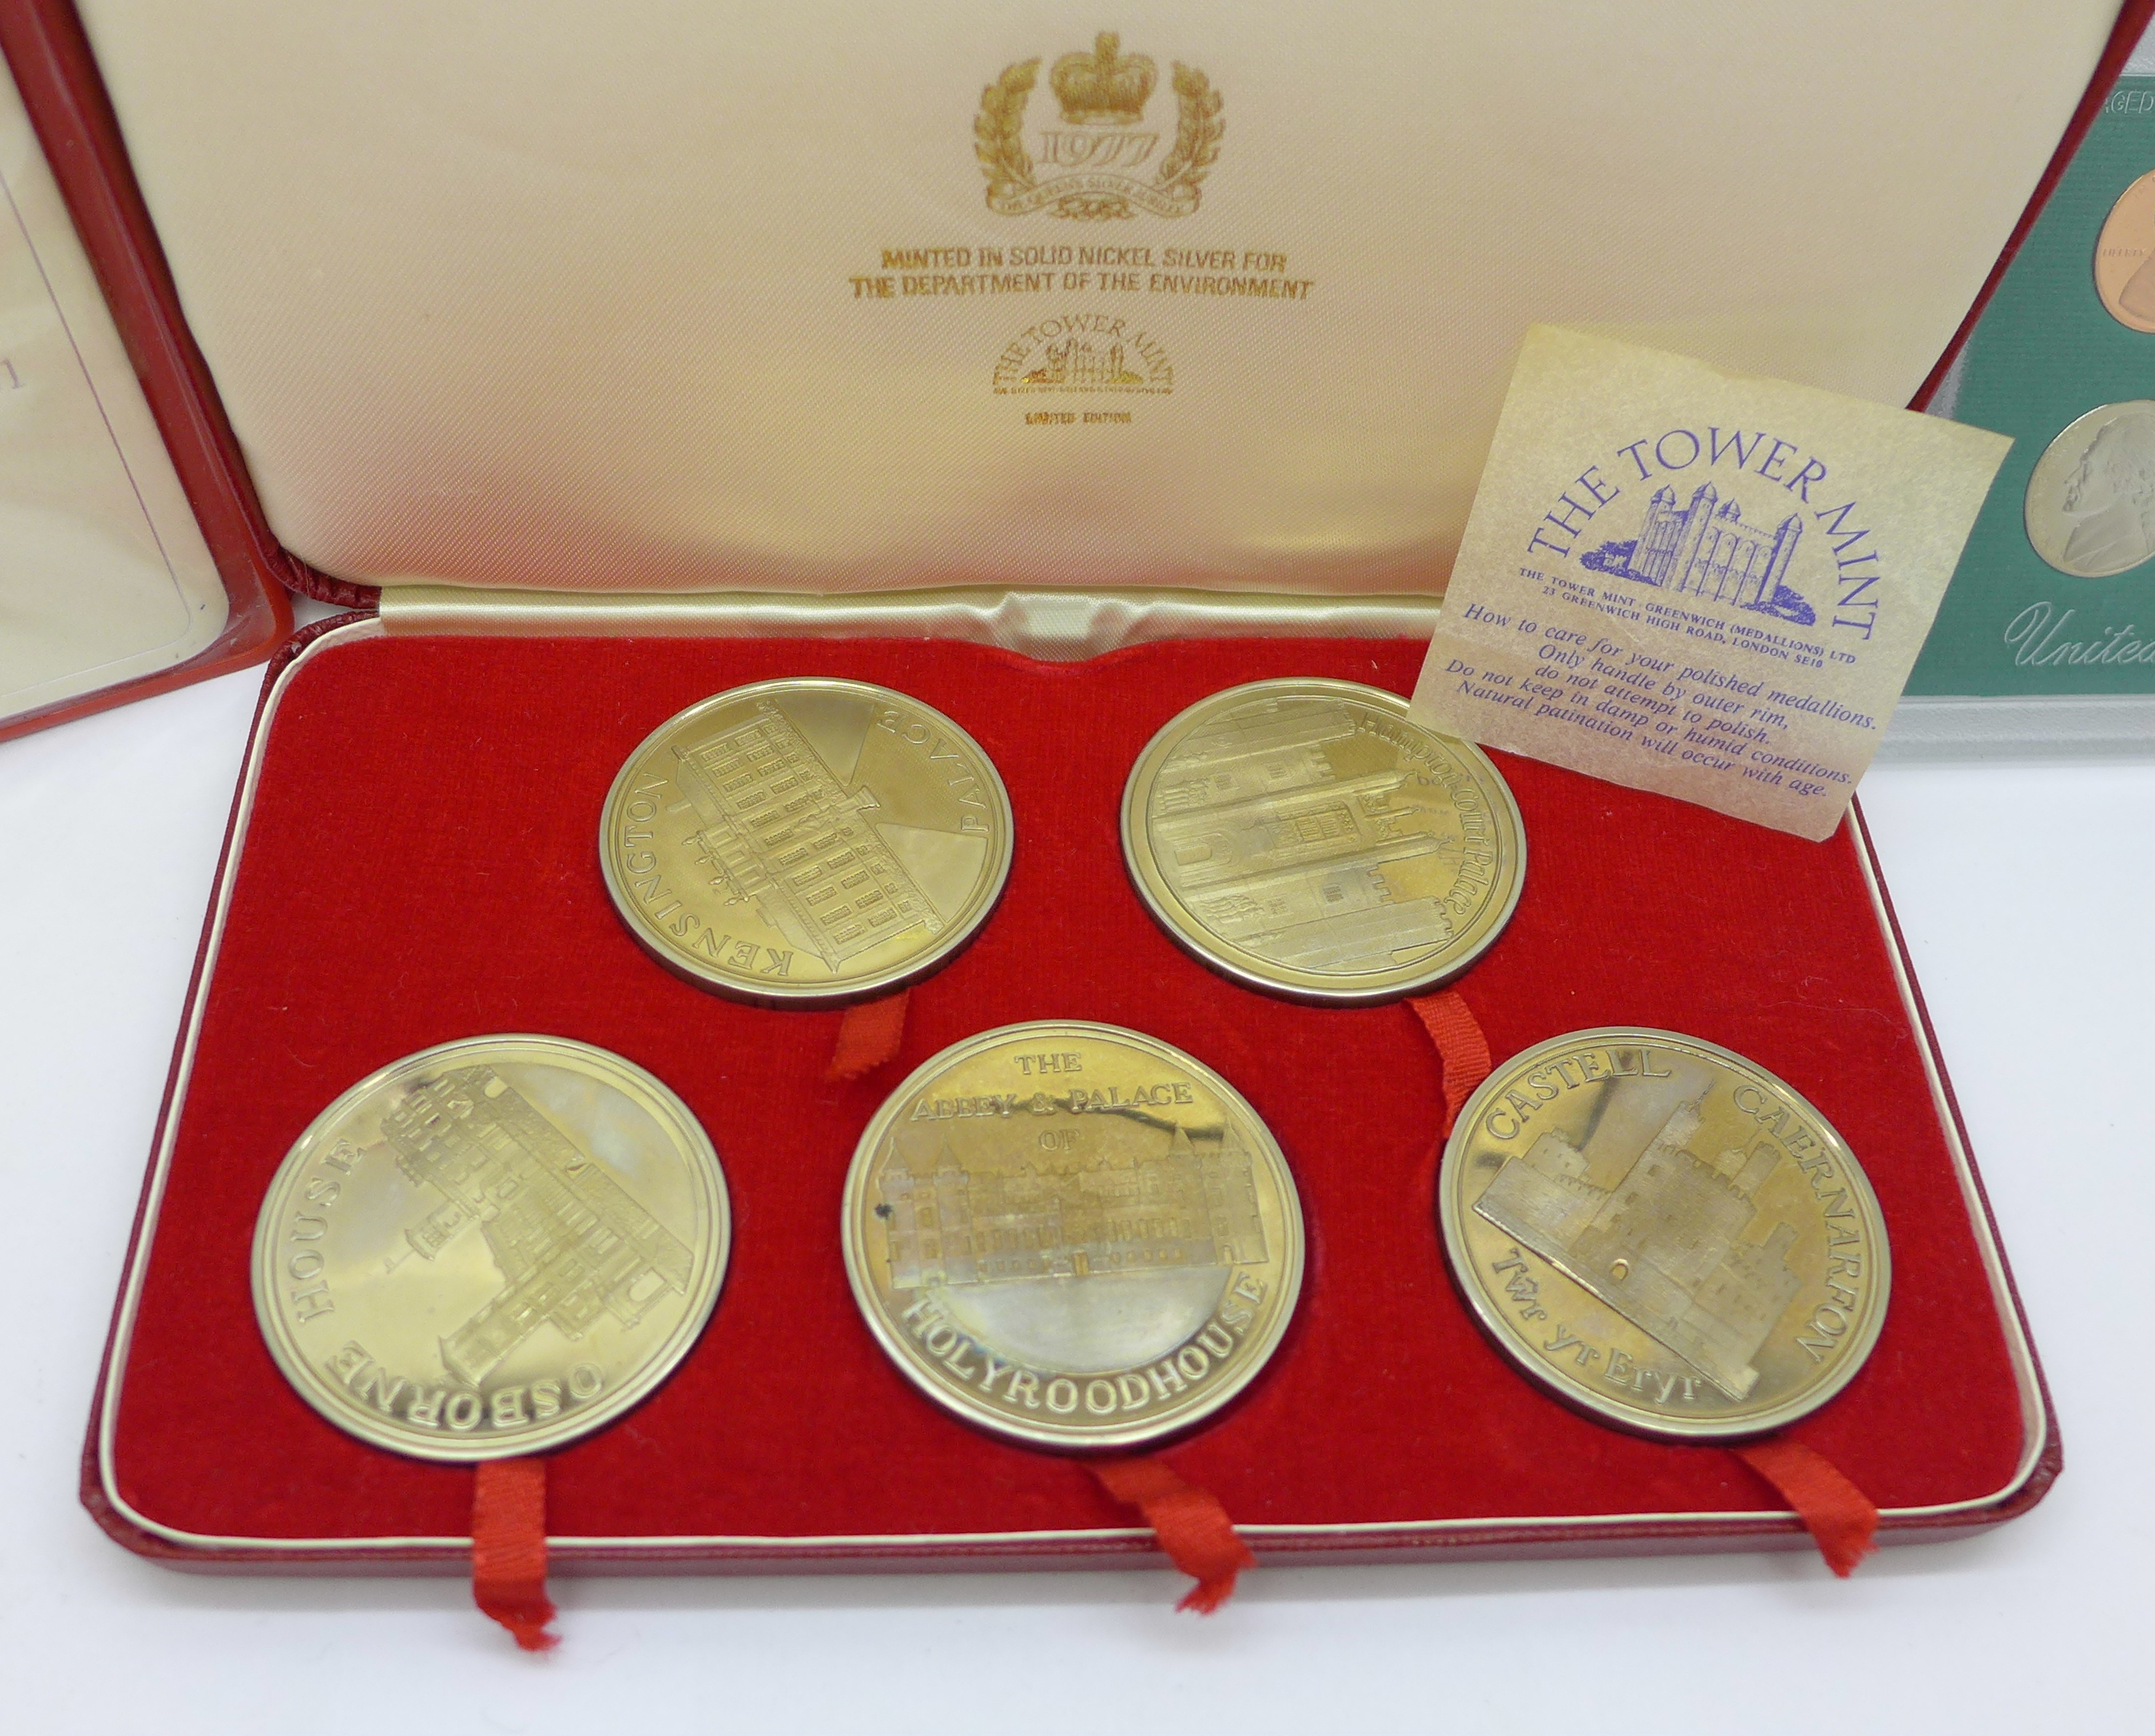 A Tower Mint limited edition nickel silver 5-coin set, cased, a 1996 United States mint proof set, - Image 3 of 5